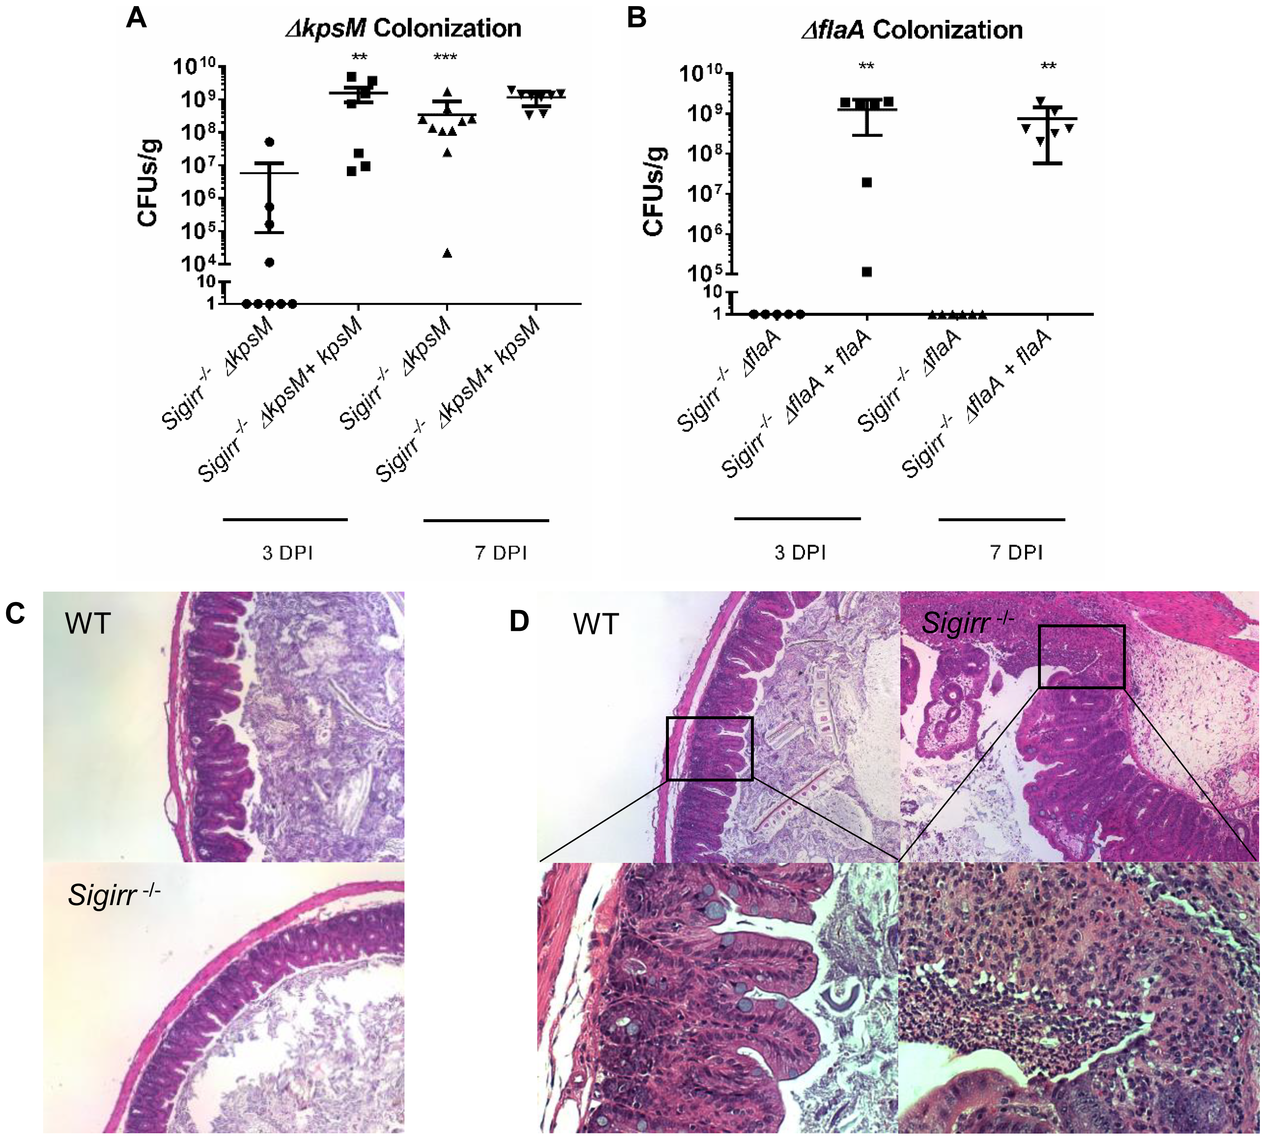 Colonization of WT and <i>Sigirr−/−</i> mice by <i>ΔkpsM</i> and <i>ΔflaA</i>.